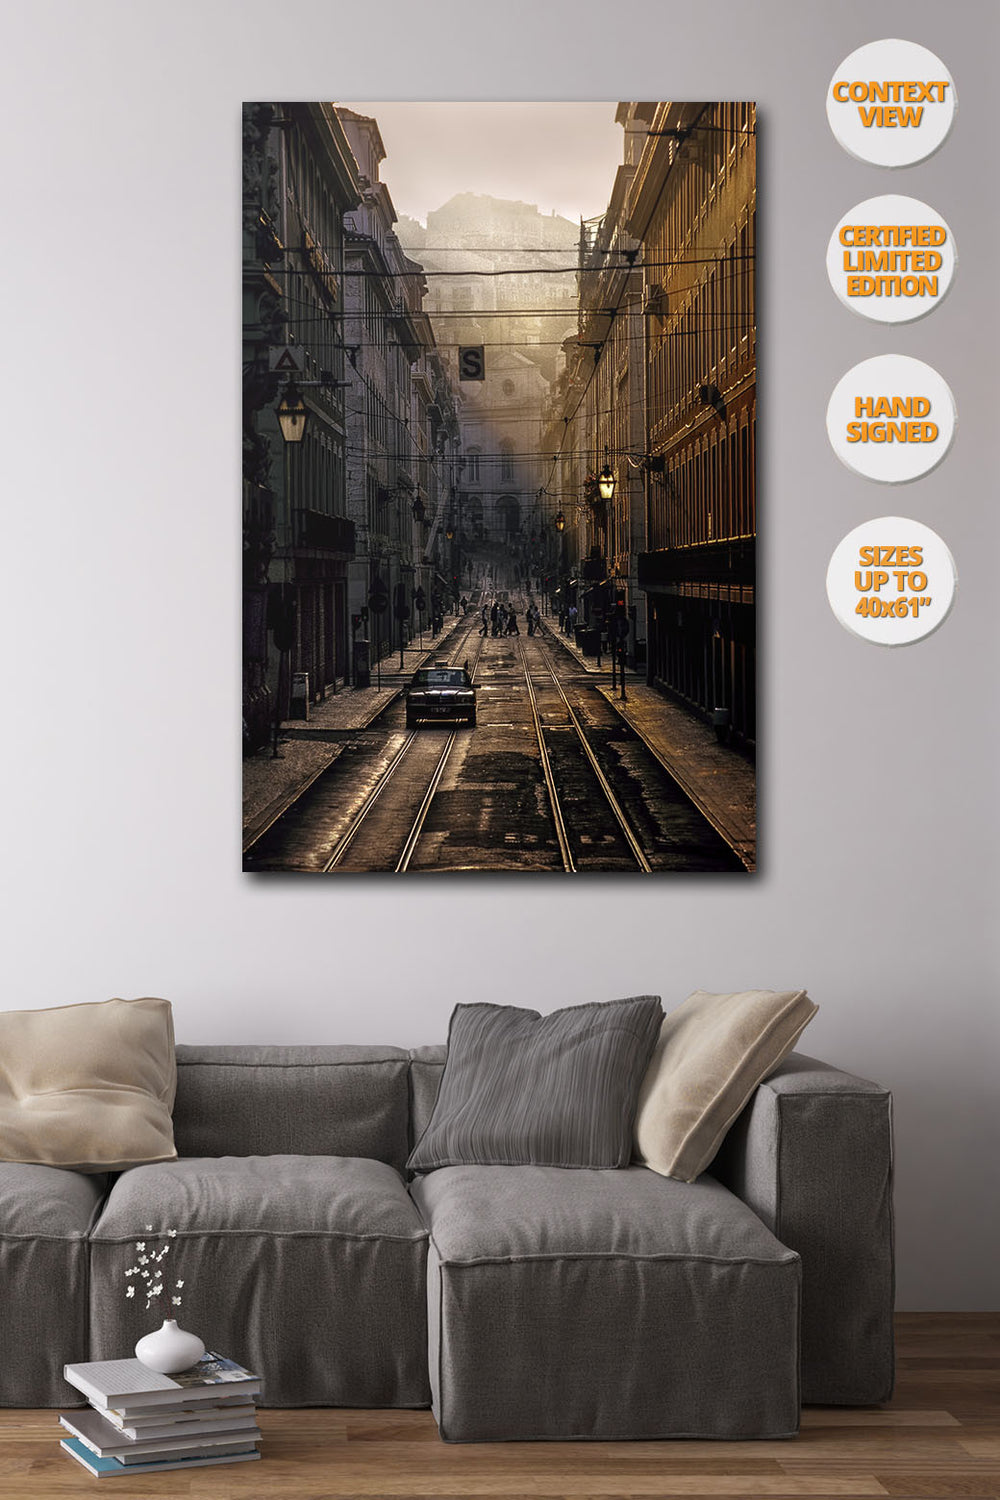 Taxi in La Baixa at sunrise, Lisboa, Portugal. | Print hanged in living room.